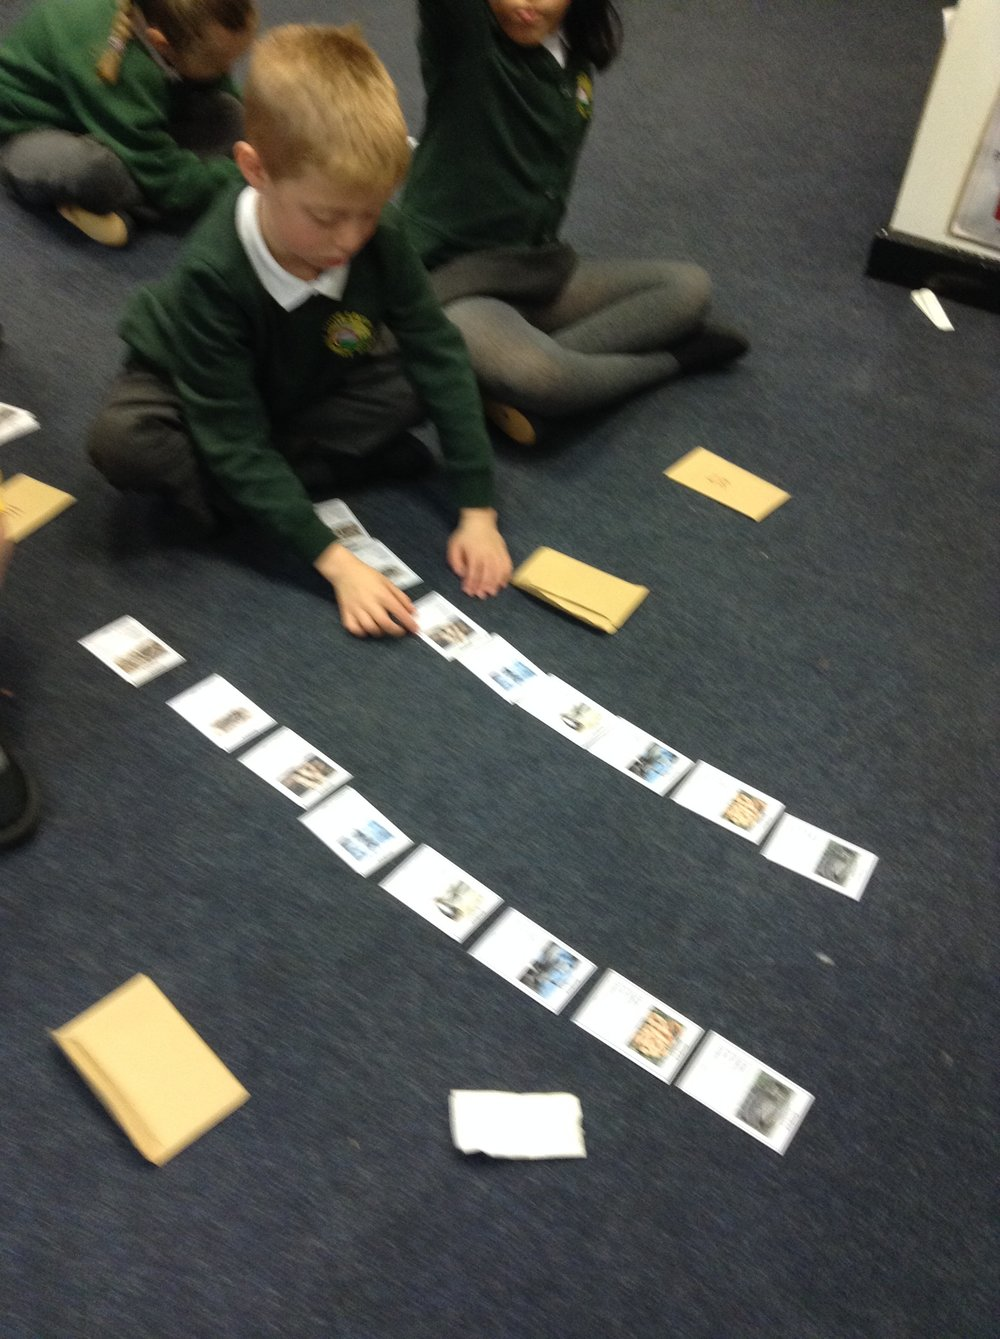 Sorting cards in numerical orders.